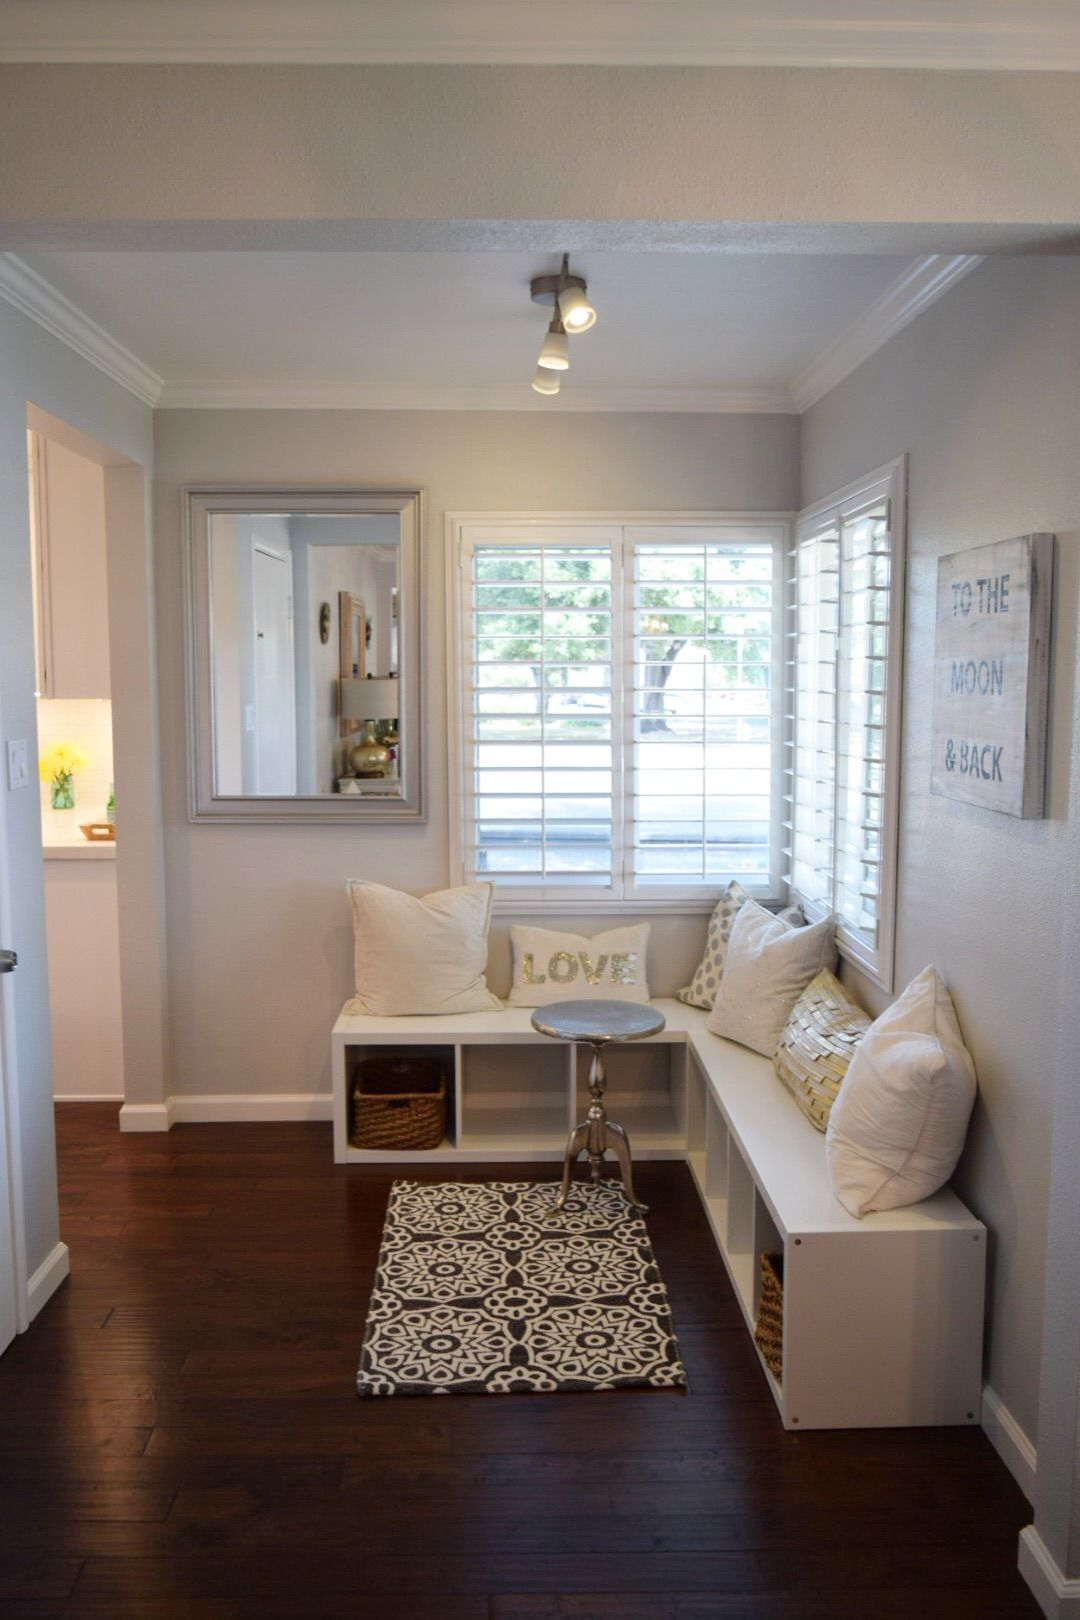 Create An Easy Window Seating Area With Pillows For Comfort And